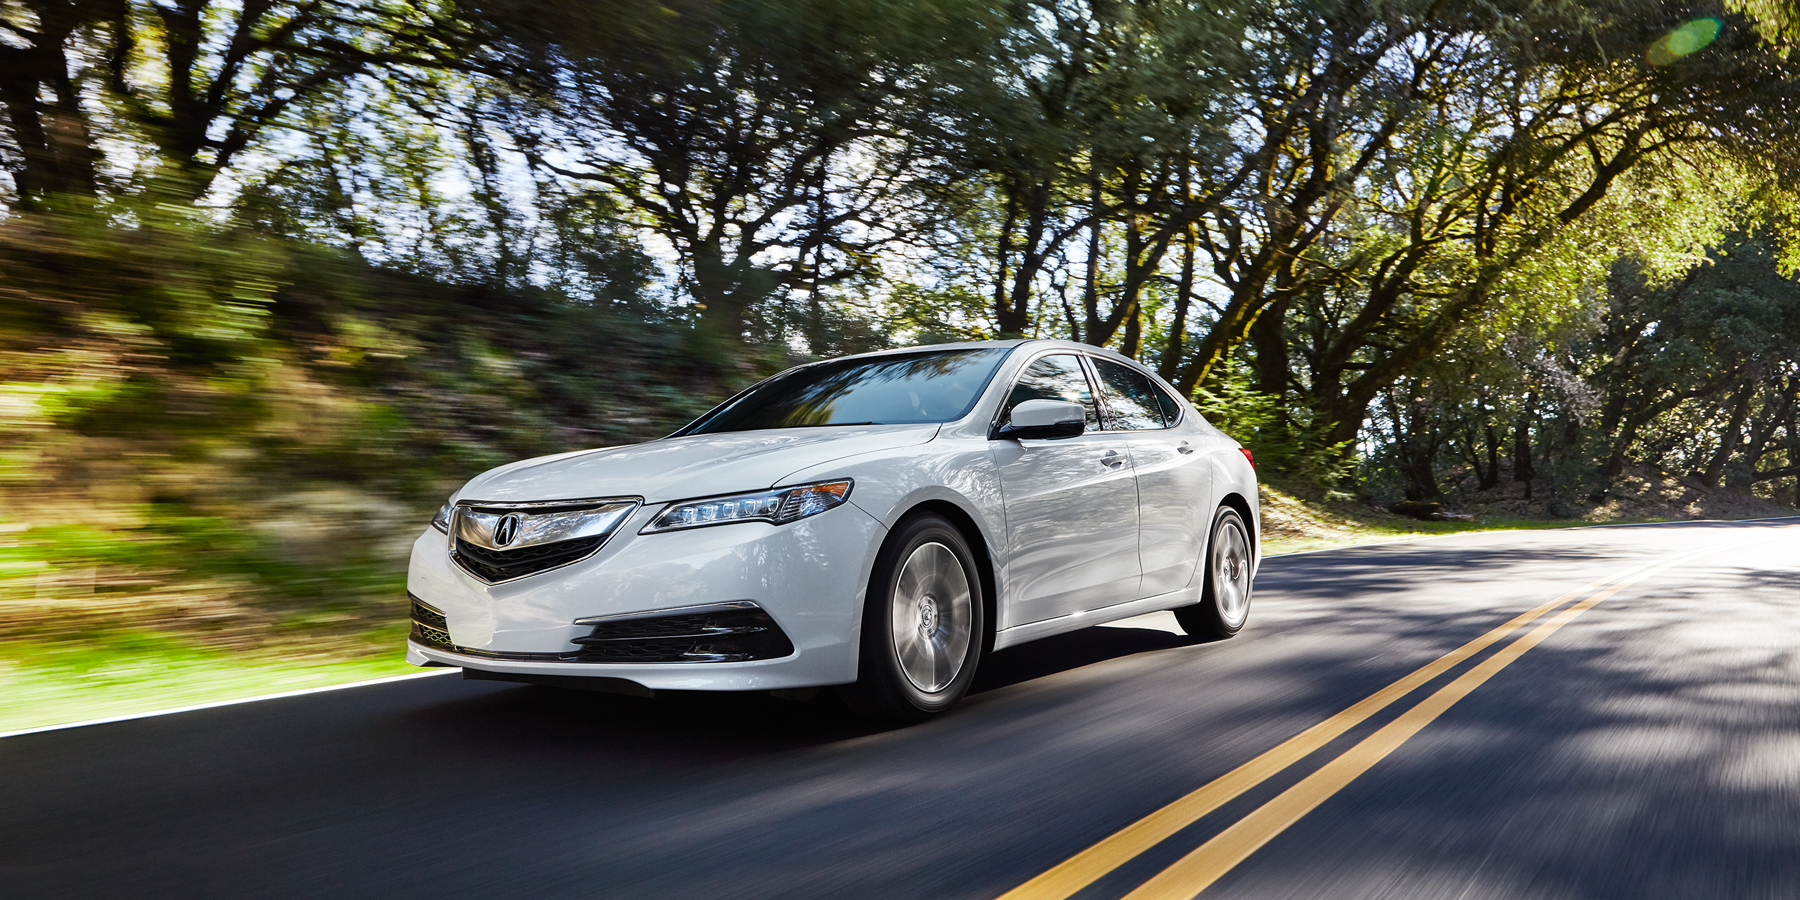 2017 acura tlx performance and fuel efficiency in chicago. Black Bedroom Furniture Sets. Home Design Ideas